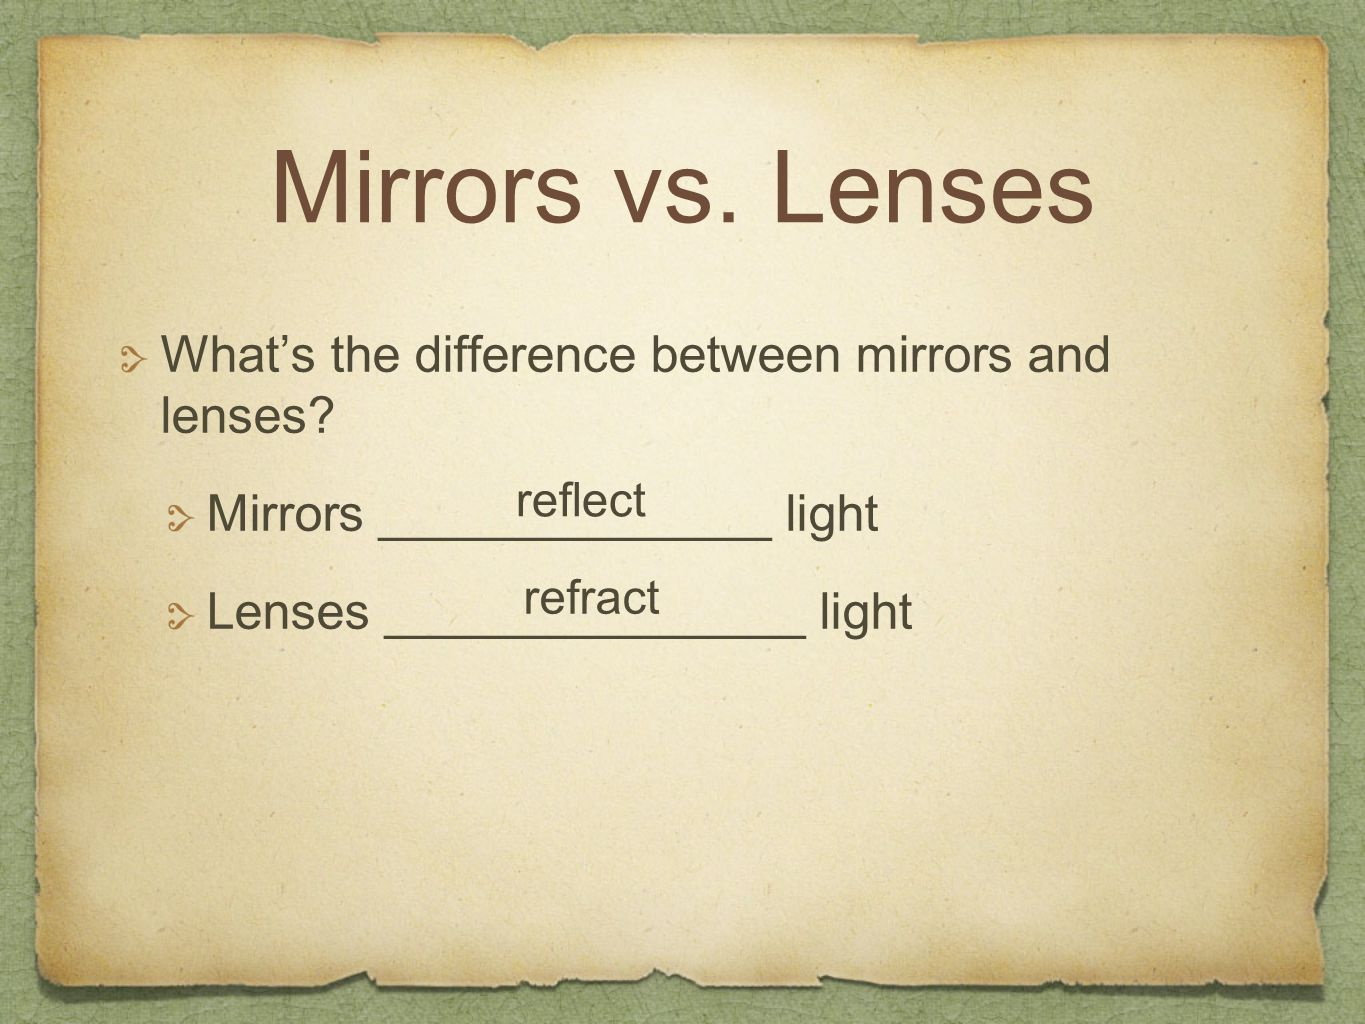 Mirrors vs. Lenses What's the difference between mirrors and lenses? Mirrors ______________ light Lenses _______________ light reflect refract